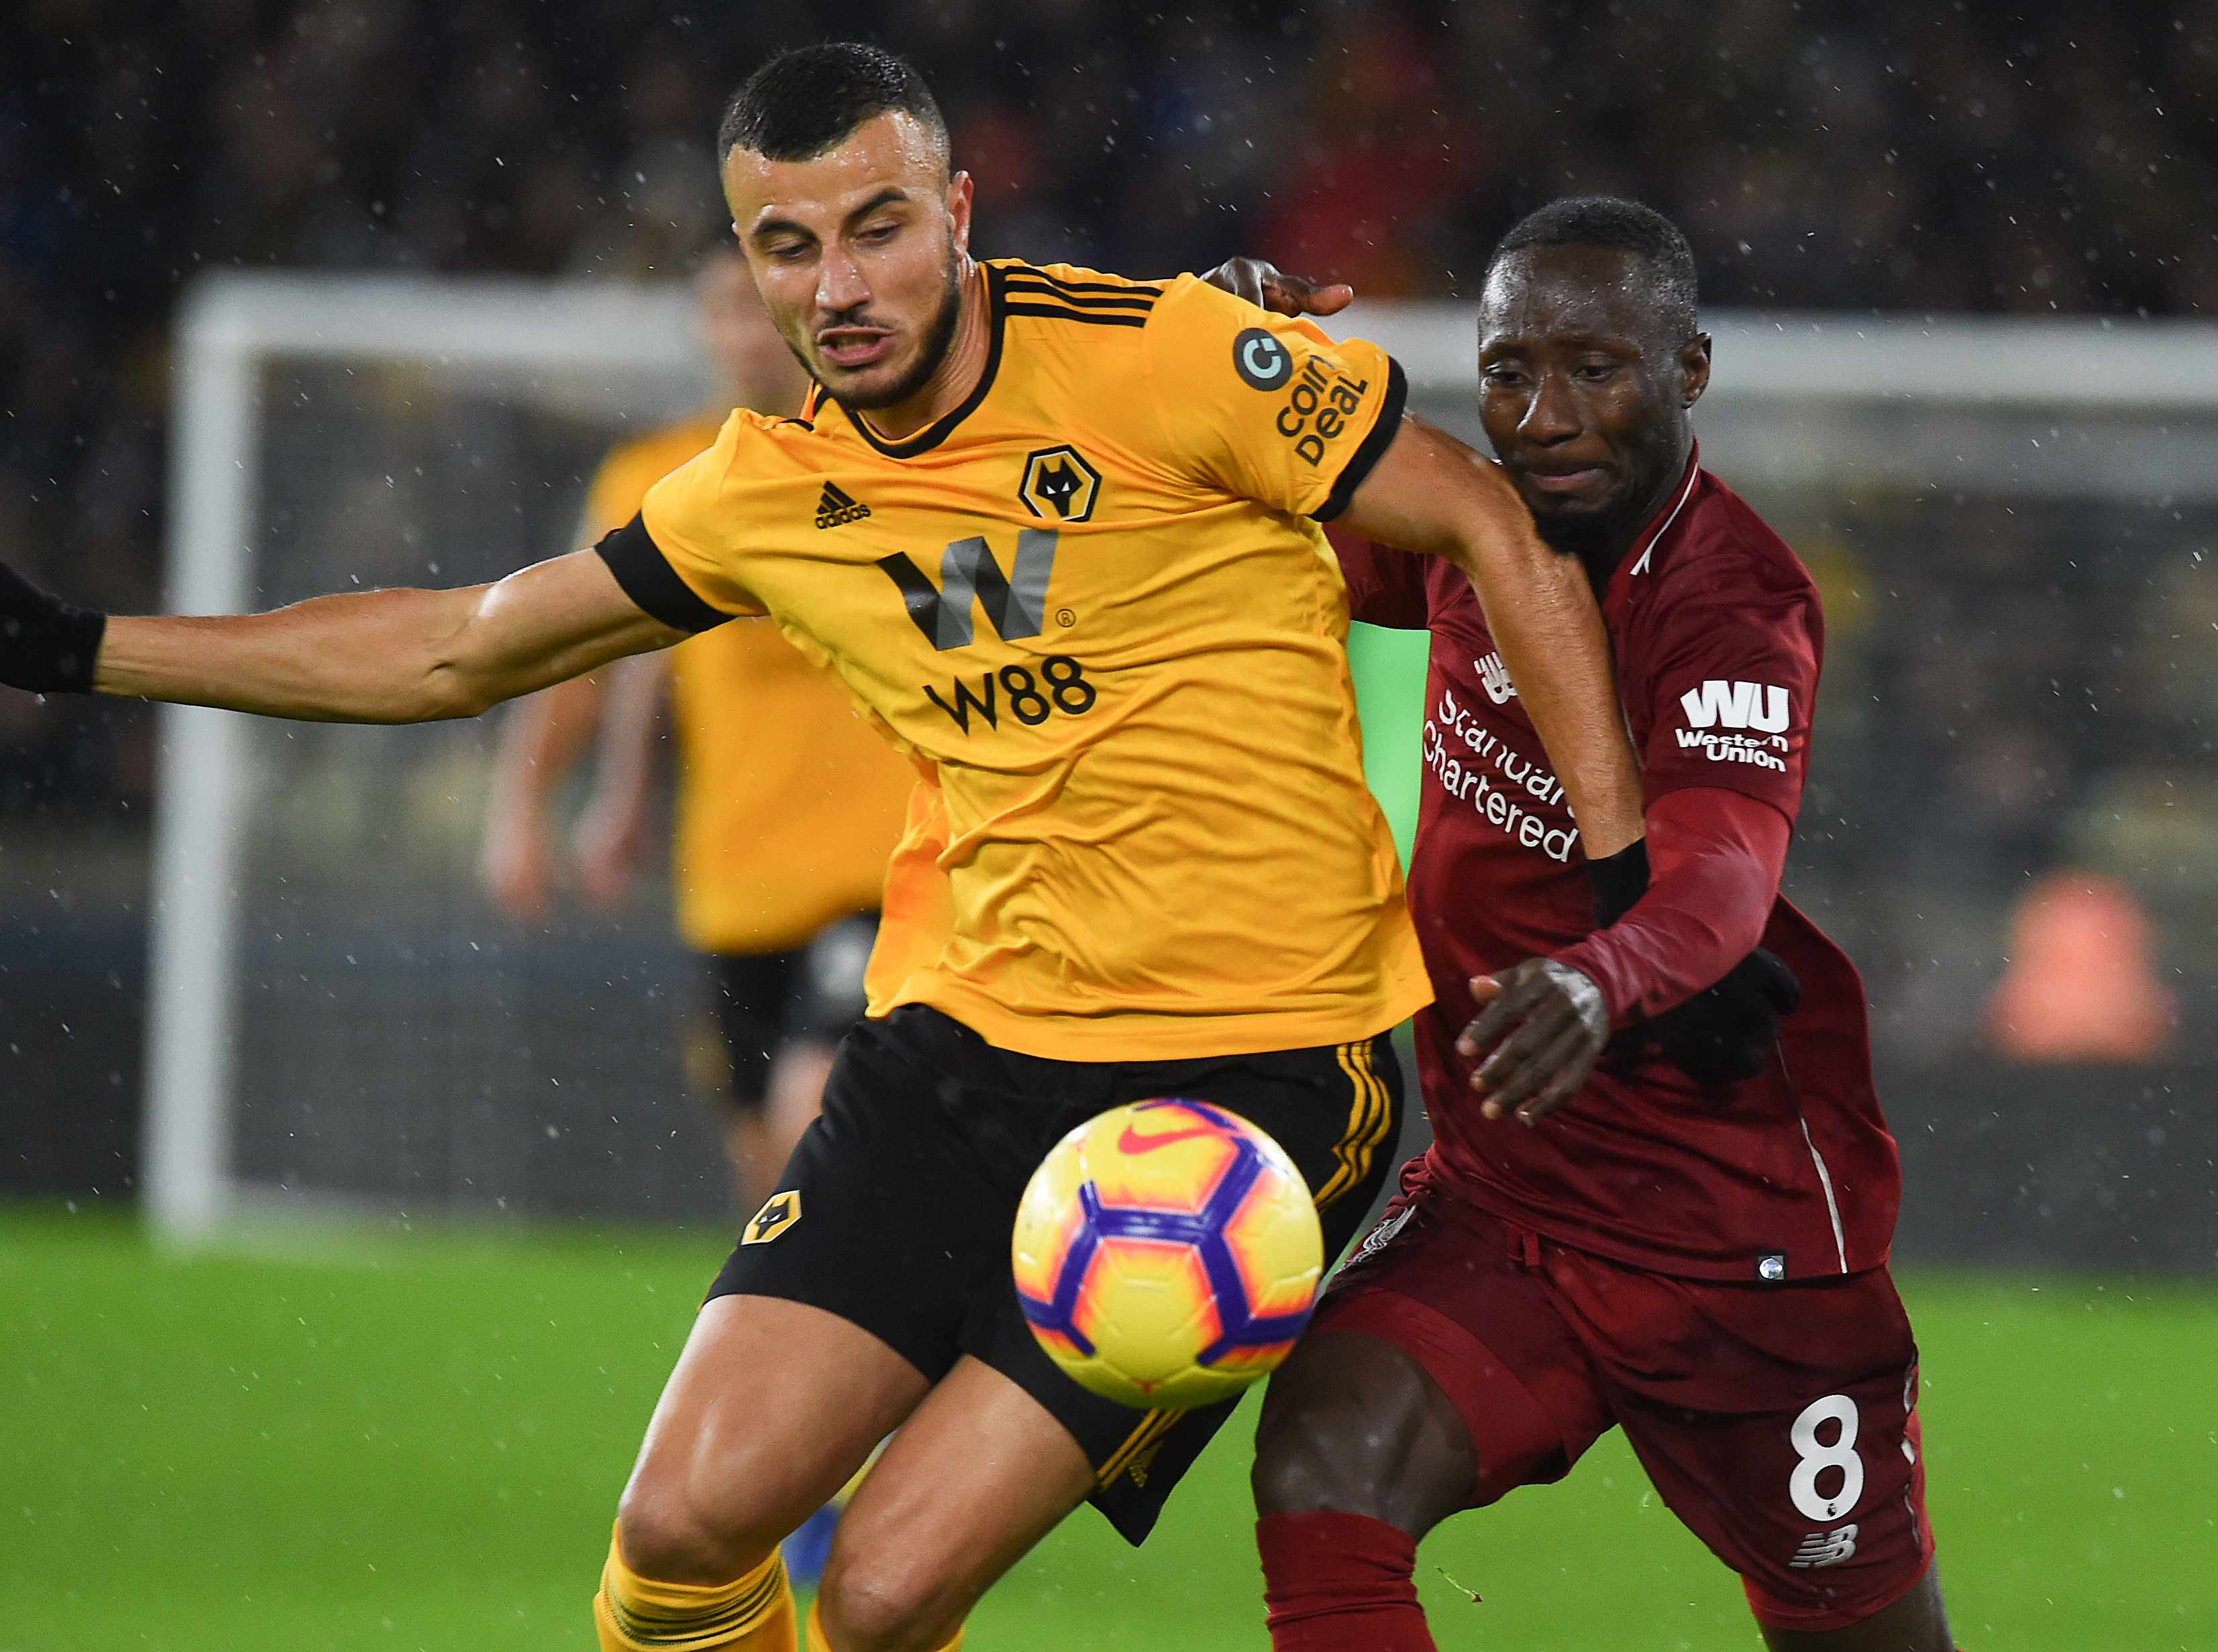 WOLVERHAMPTON, ENGLAND - DECEMBER 21: (THE SUN OUT,THE SUN ON SUNDAY OUT) Nabi Keita of Liverpool battles with Romain Saiss of Wolves during the Premier League match between Wolverhampton Wanderers and Liverpool FC at Molineux on December 22, 2018 in Wolverhampton, United Kingdom. (Photo by Nick Taylor //Liverpool FC via Getty Images)